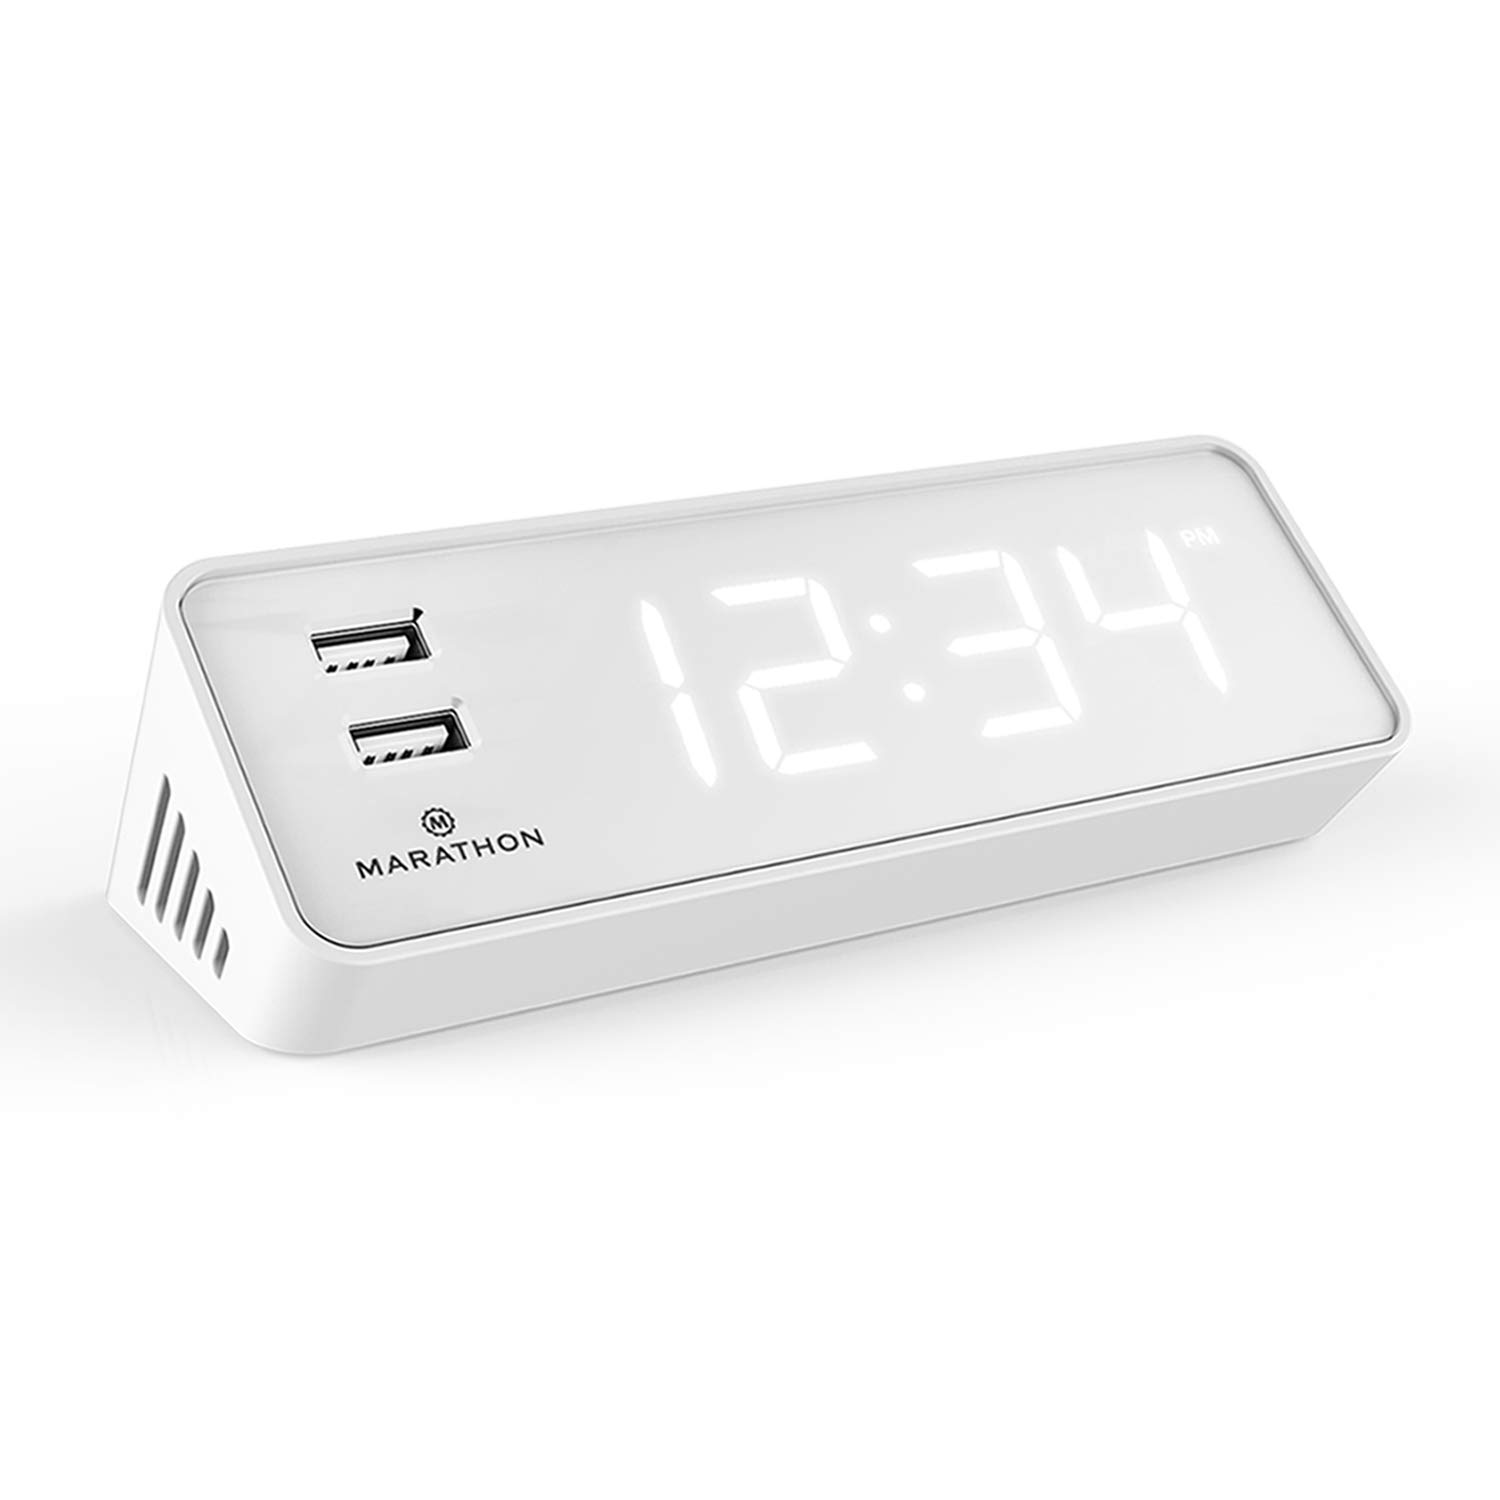 MARATHON CL030055BK LED Alarm Clock with Two Fast Charging, Front Facing USB Ports. Great for Travelling